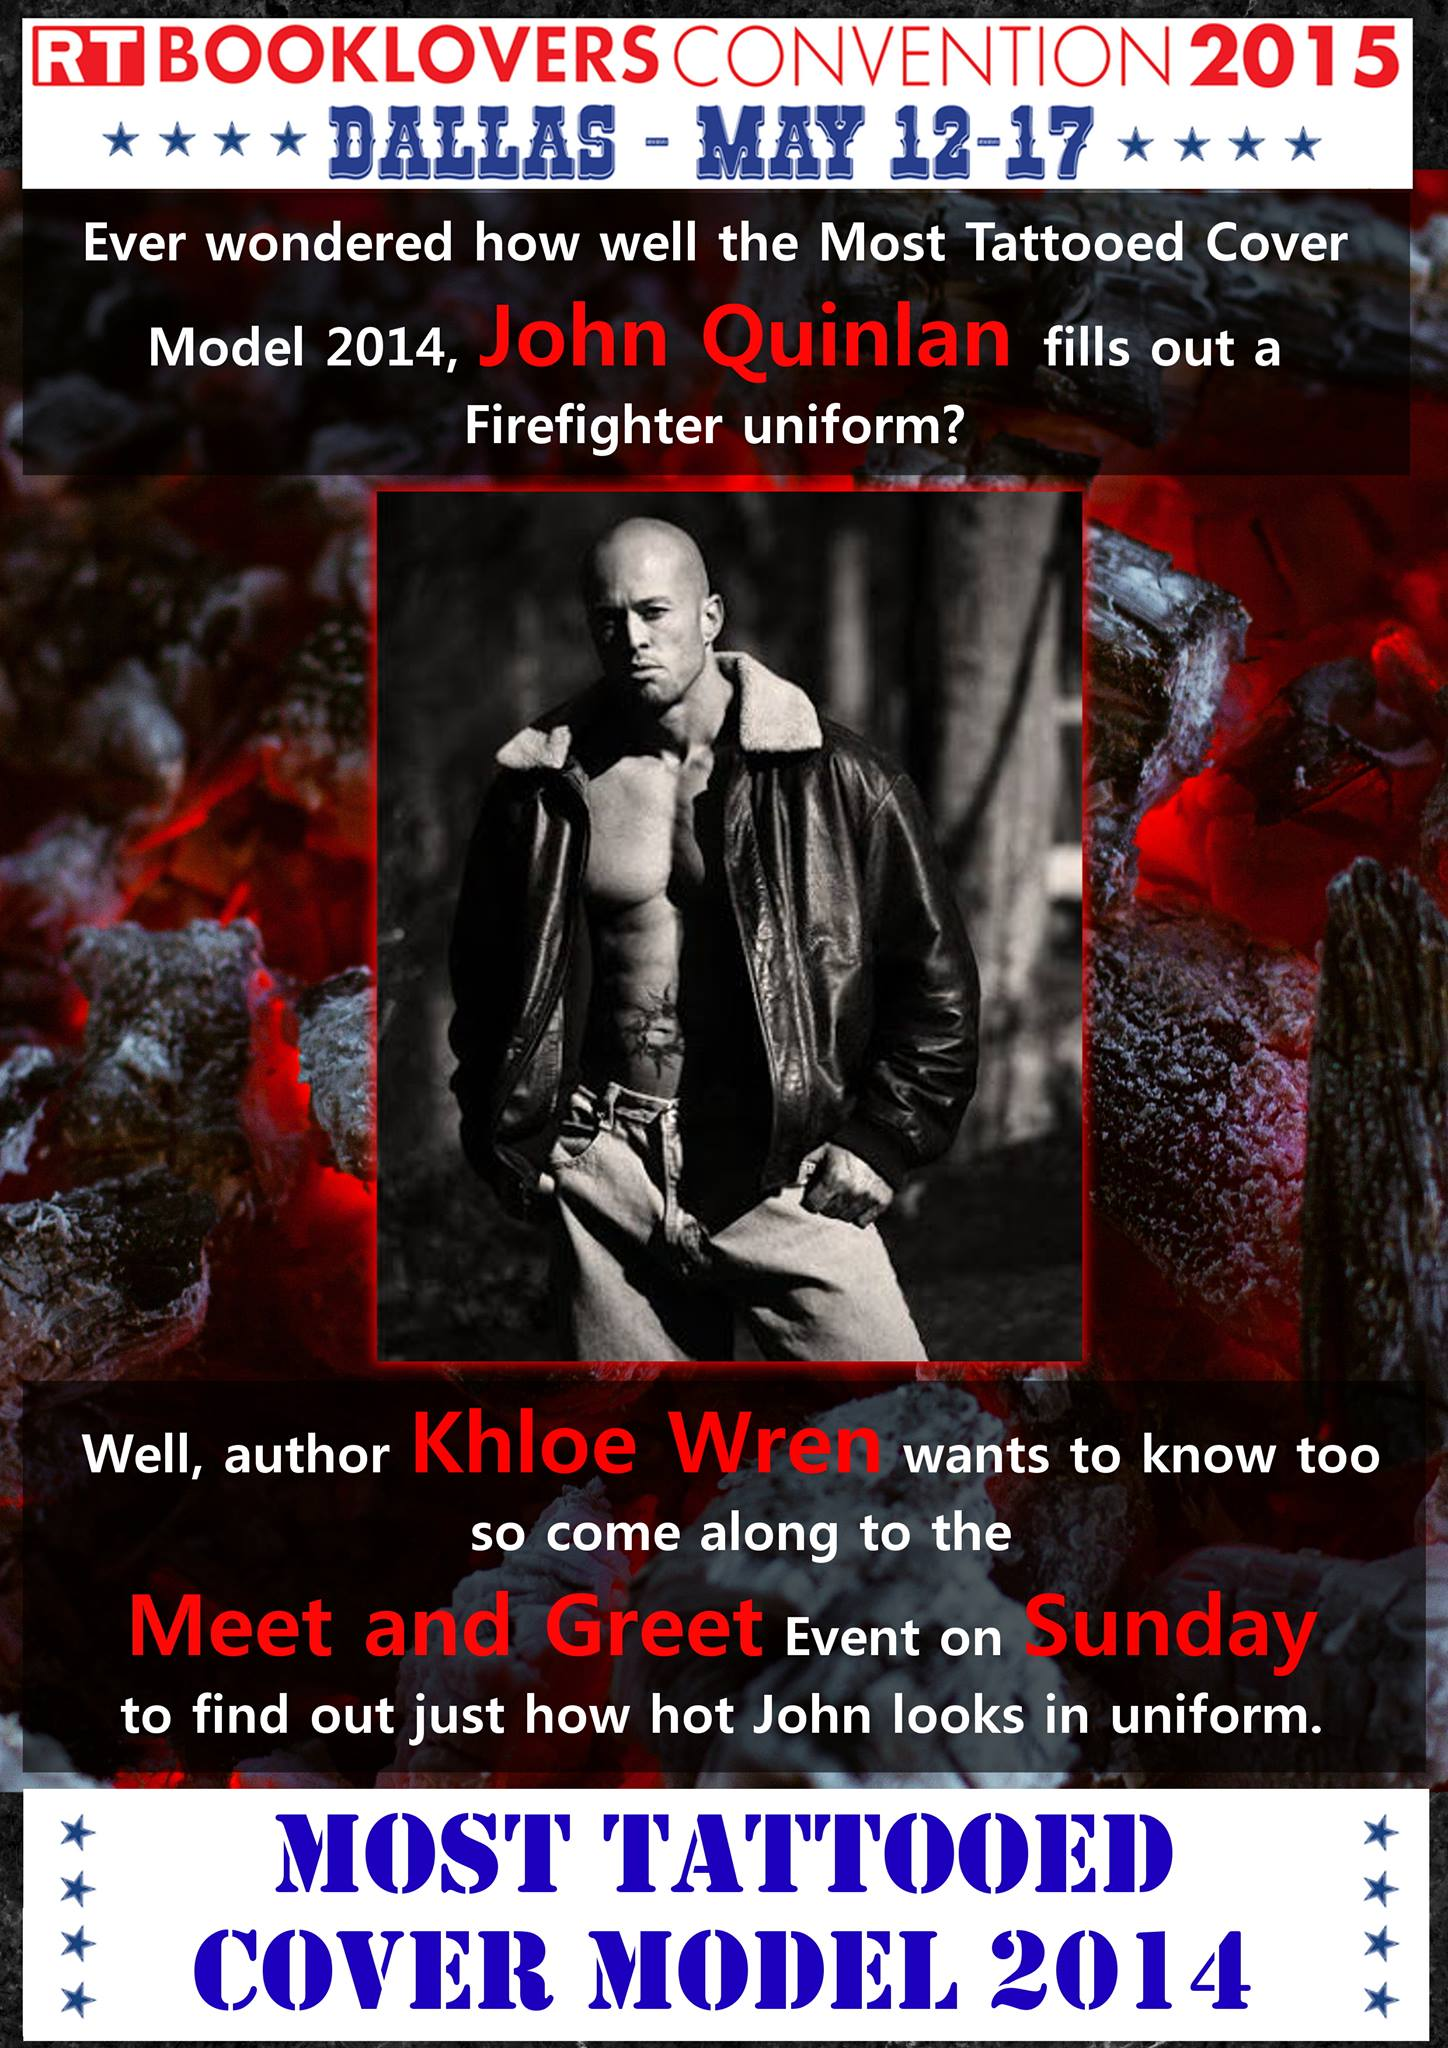 The Most Tattooed Male Romance Cover Model in the World 2014 John Joseph Quinlan Official Feature @ The World Famous 2015 RT Booklovers Convention Dallas, Texas 'Meet & Greet' with Author Khloe Wren on Sunday May 17th Noon- 5pm #JohnQuinlan